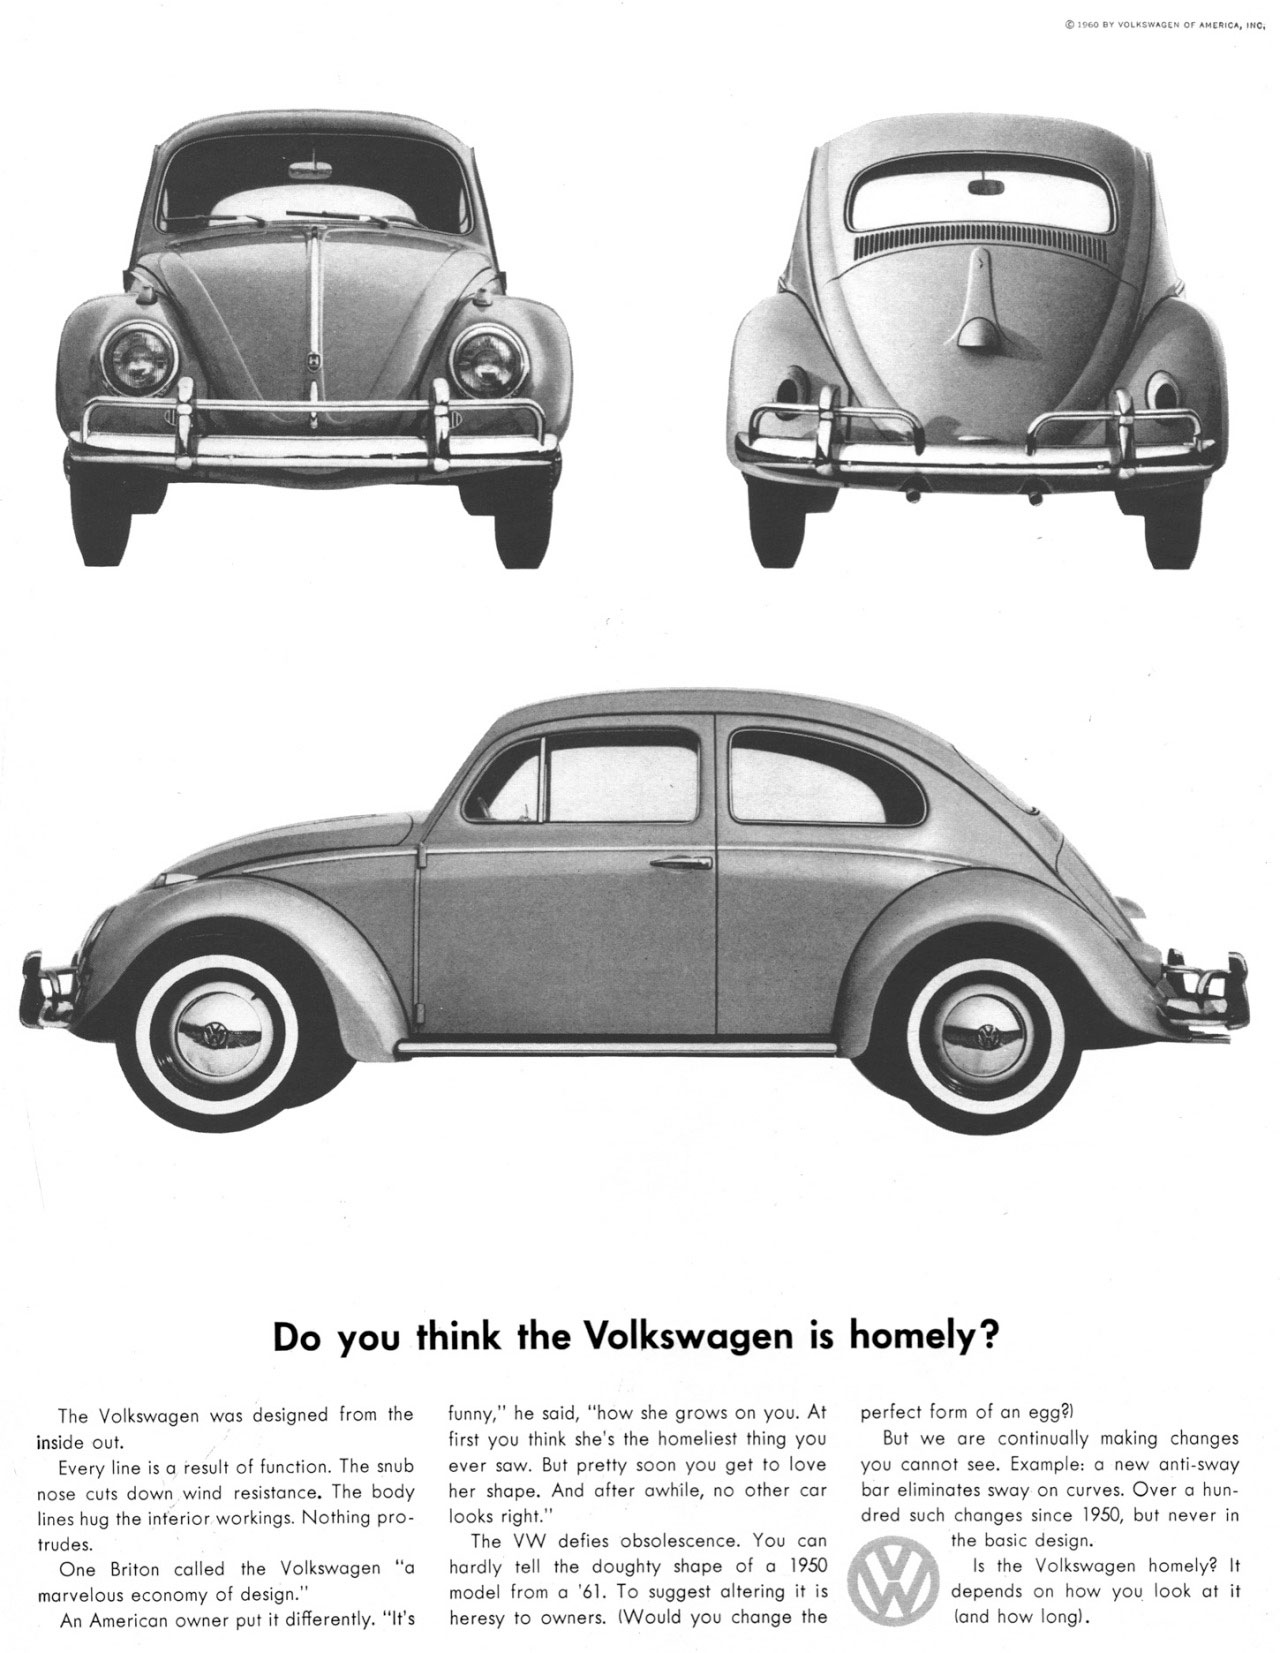 Do you think the Volkswagen is homely?  The Volkswagen was designed from the inside out. Every line is a result of function. The snub nose cuts down wind resistance. The body lines hug the interior workings. Nothing pro-trudes. One Briton called the Volkswagen ''a marvelous economy of design.'' An American owner put it differently. ''It's funny,'' he said, ''how she grows on you. At first you think she's the homeliest thing you ever saw. But pretty soon you get to love her shape. And after awhile, no other car looks right.'' The VW defies obsolescence. You can hardly tell the doughty shape of a 1950 model from a '61. To suggest altering it is heresy to owners. (Would you change the perfect form of an egg?) But we are continually making changes you cannot see. Example: a new anti-sway bar eliminates sway on curves. Over a hun-dred such changes since 1950, but never in the basic design. Is the Volkswagen homely? It depends on how you look at it (and how long).